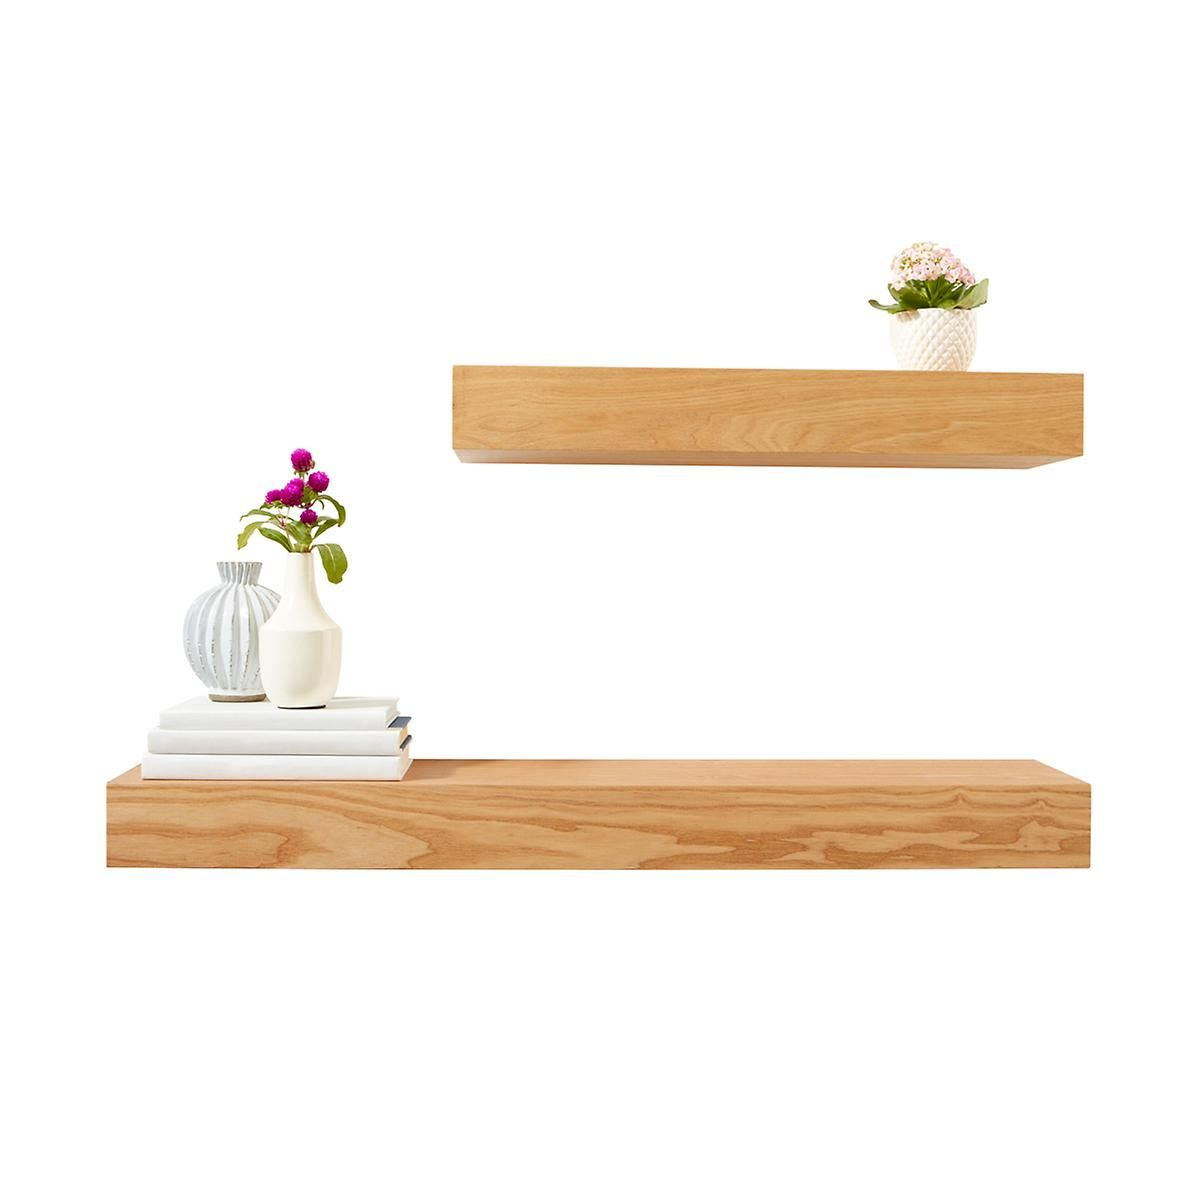 Ash Floating Shelves The Container Store 24 X 7 7 8 X 3 1 8 H Floating Shelves Floating Shelves Kitchen Ikea Floating Shelves